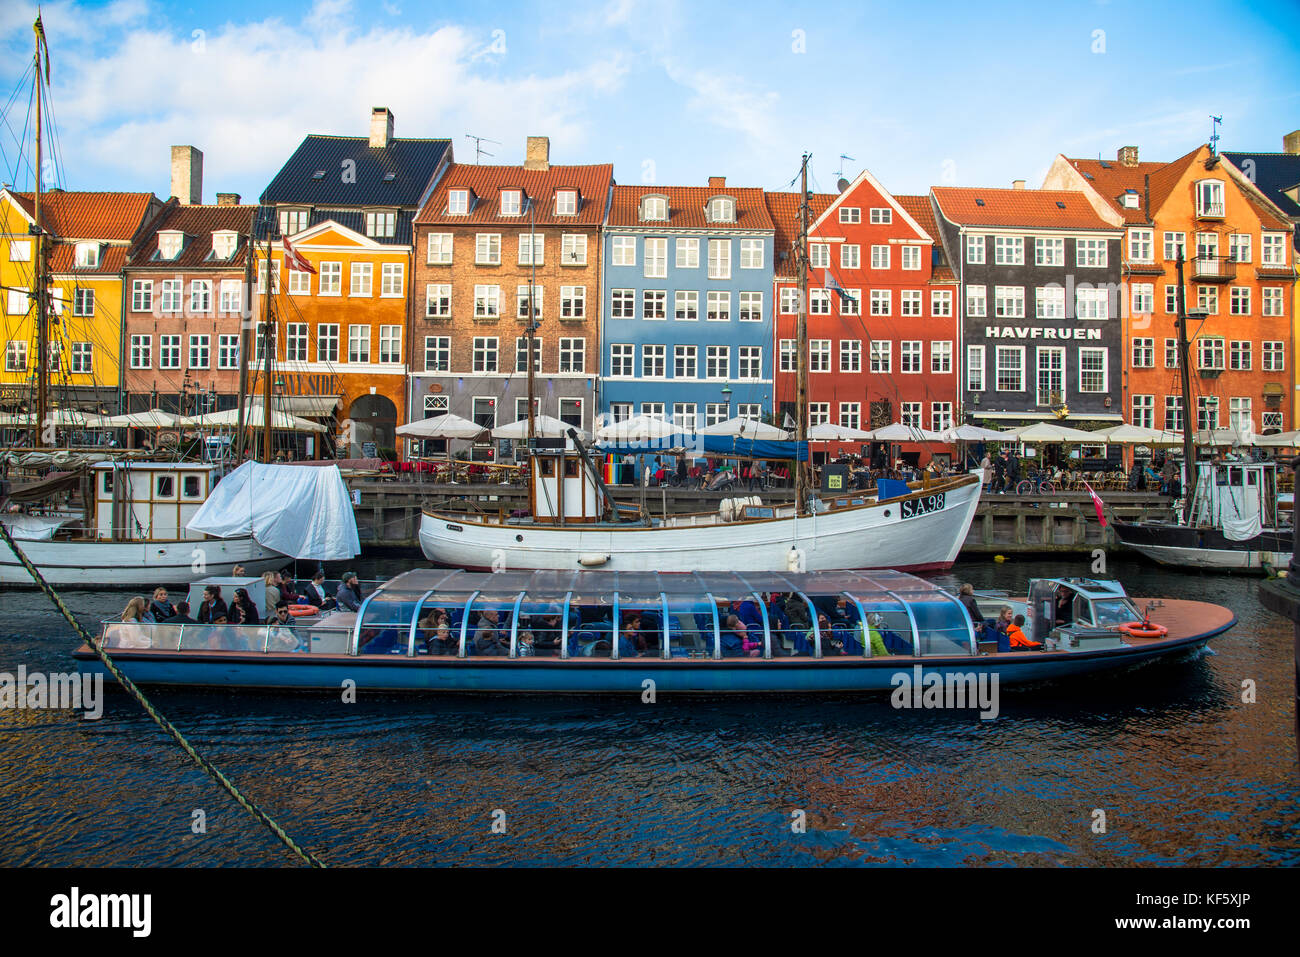 Nyhavn colorful houses in copenhagen,denmark - Stock Image